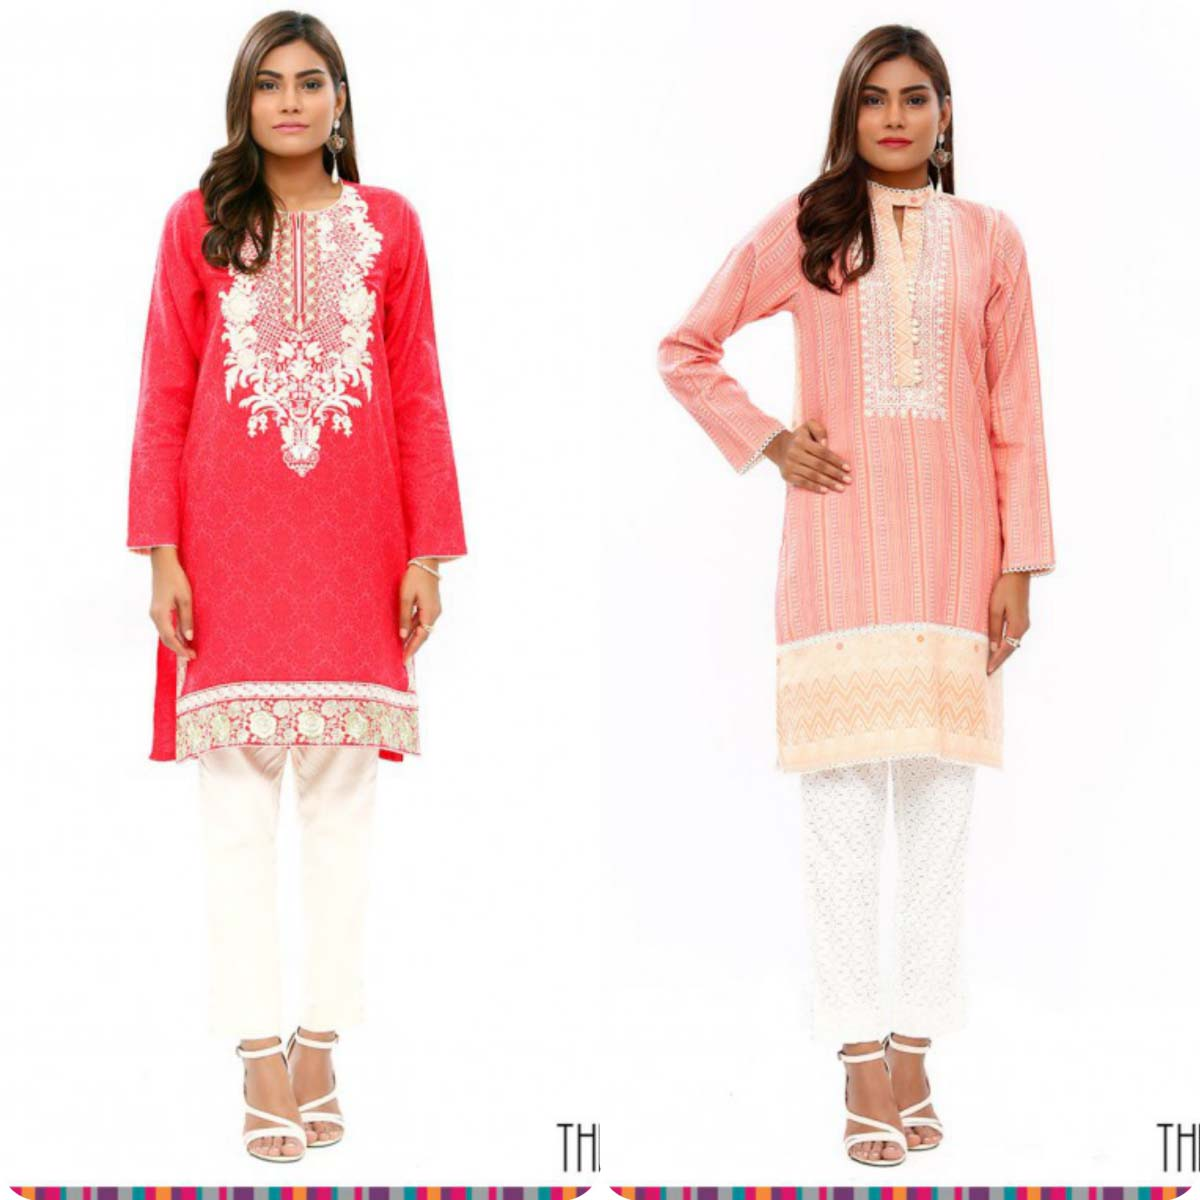 Stylish Embroidered Eid KurtisTunics for Girls By THREDZ 2016-2016 Complete Look-Book (1)